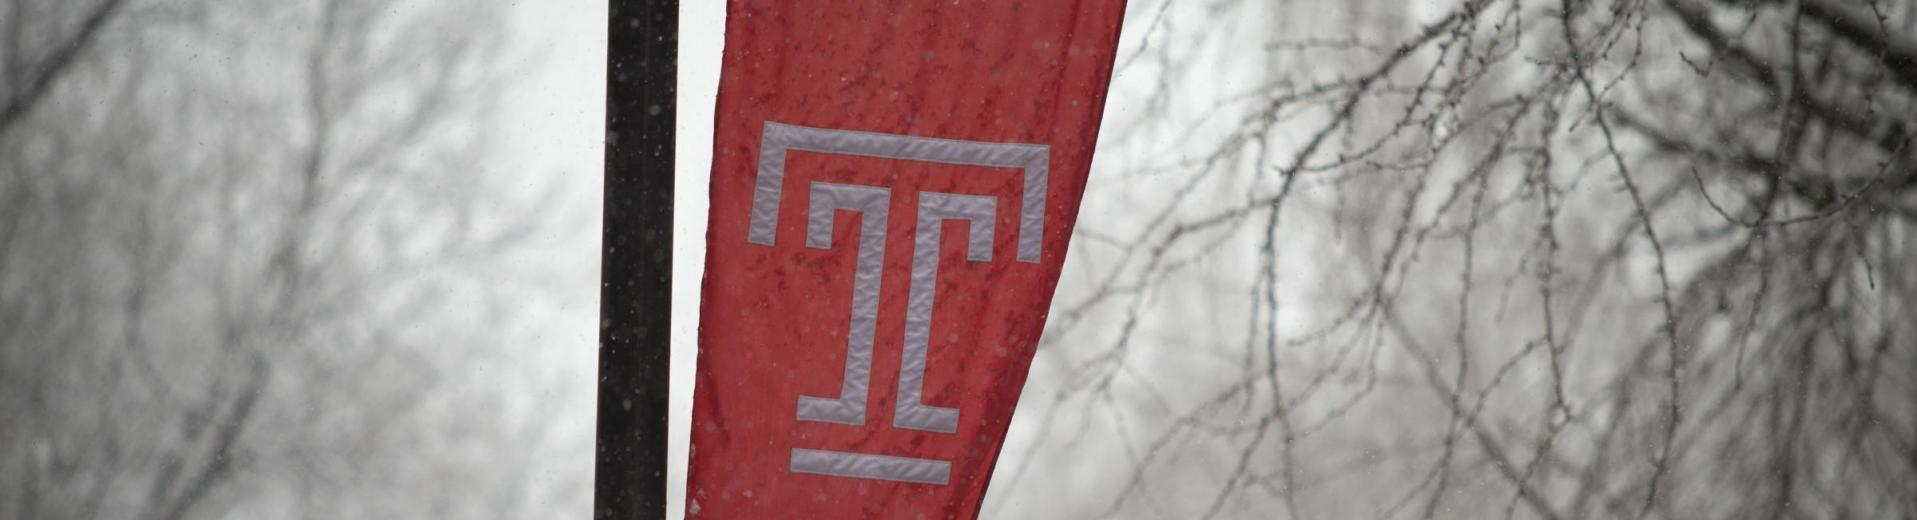 Temple Flag in Winter